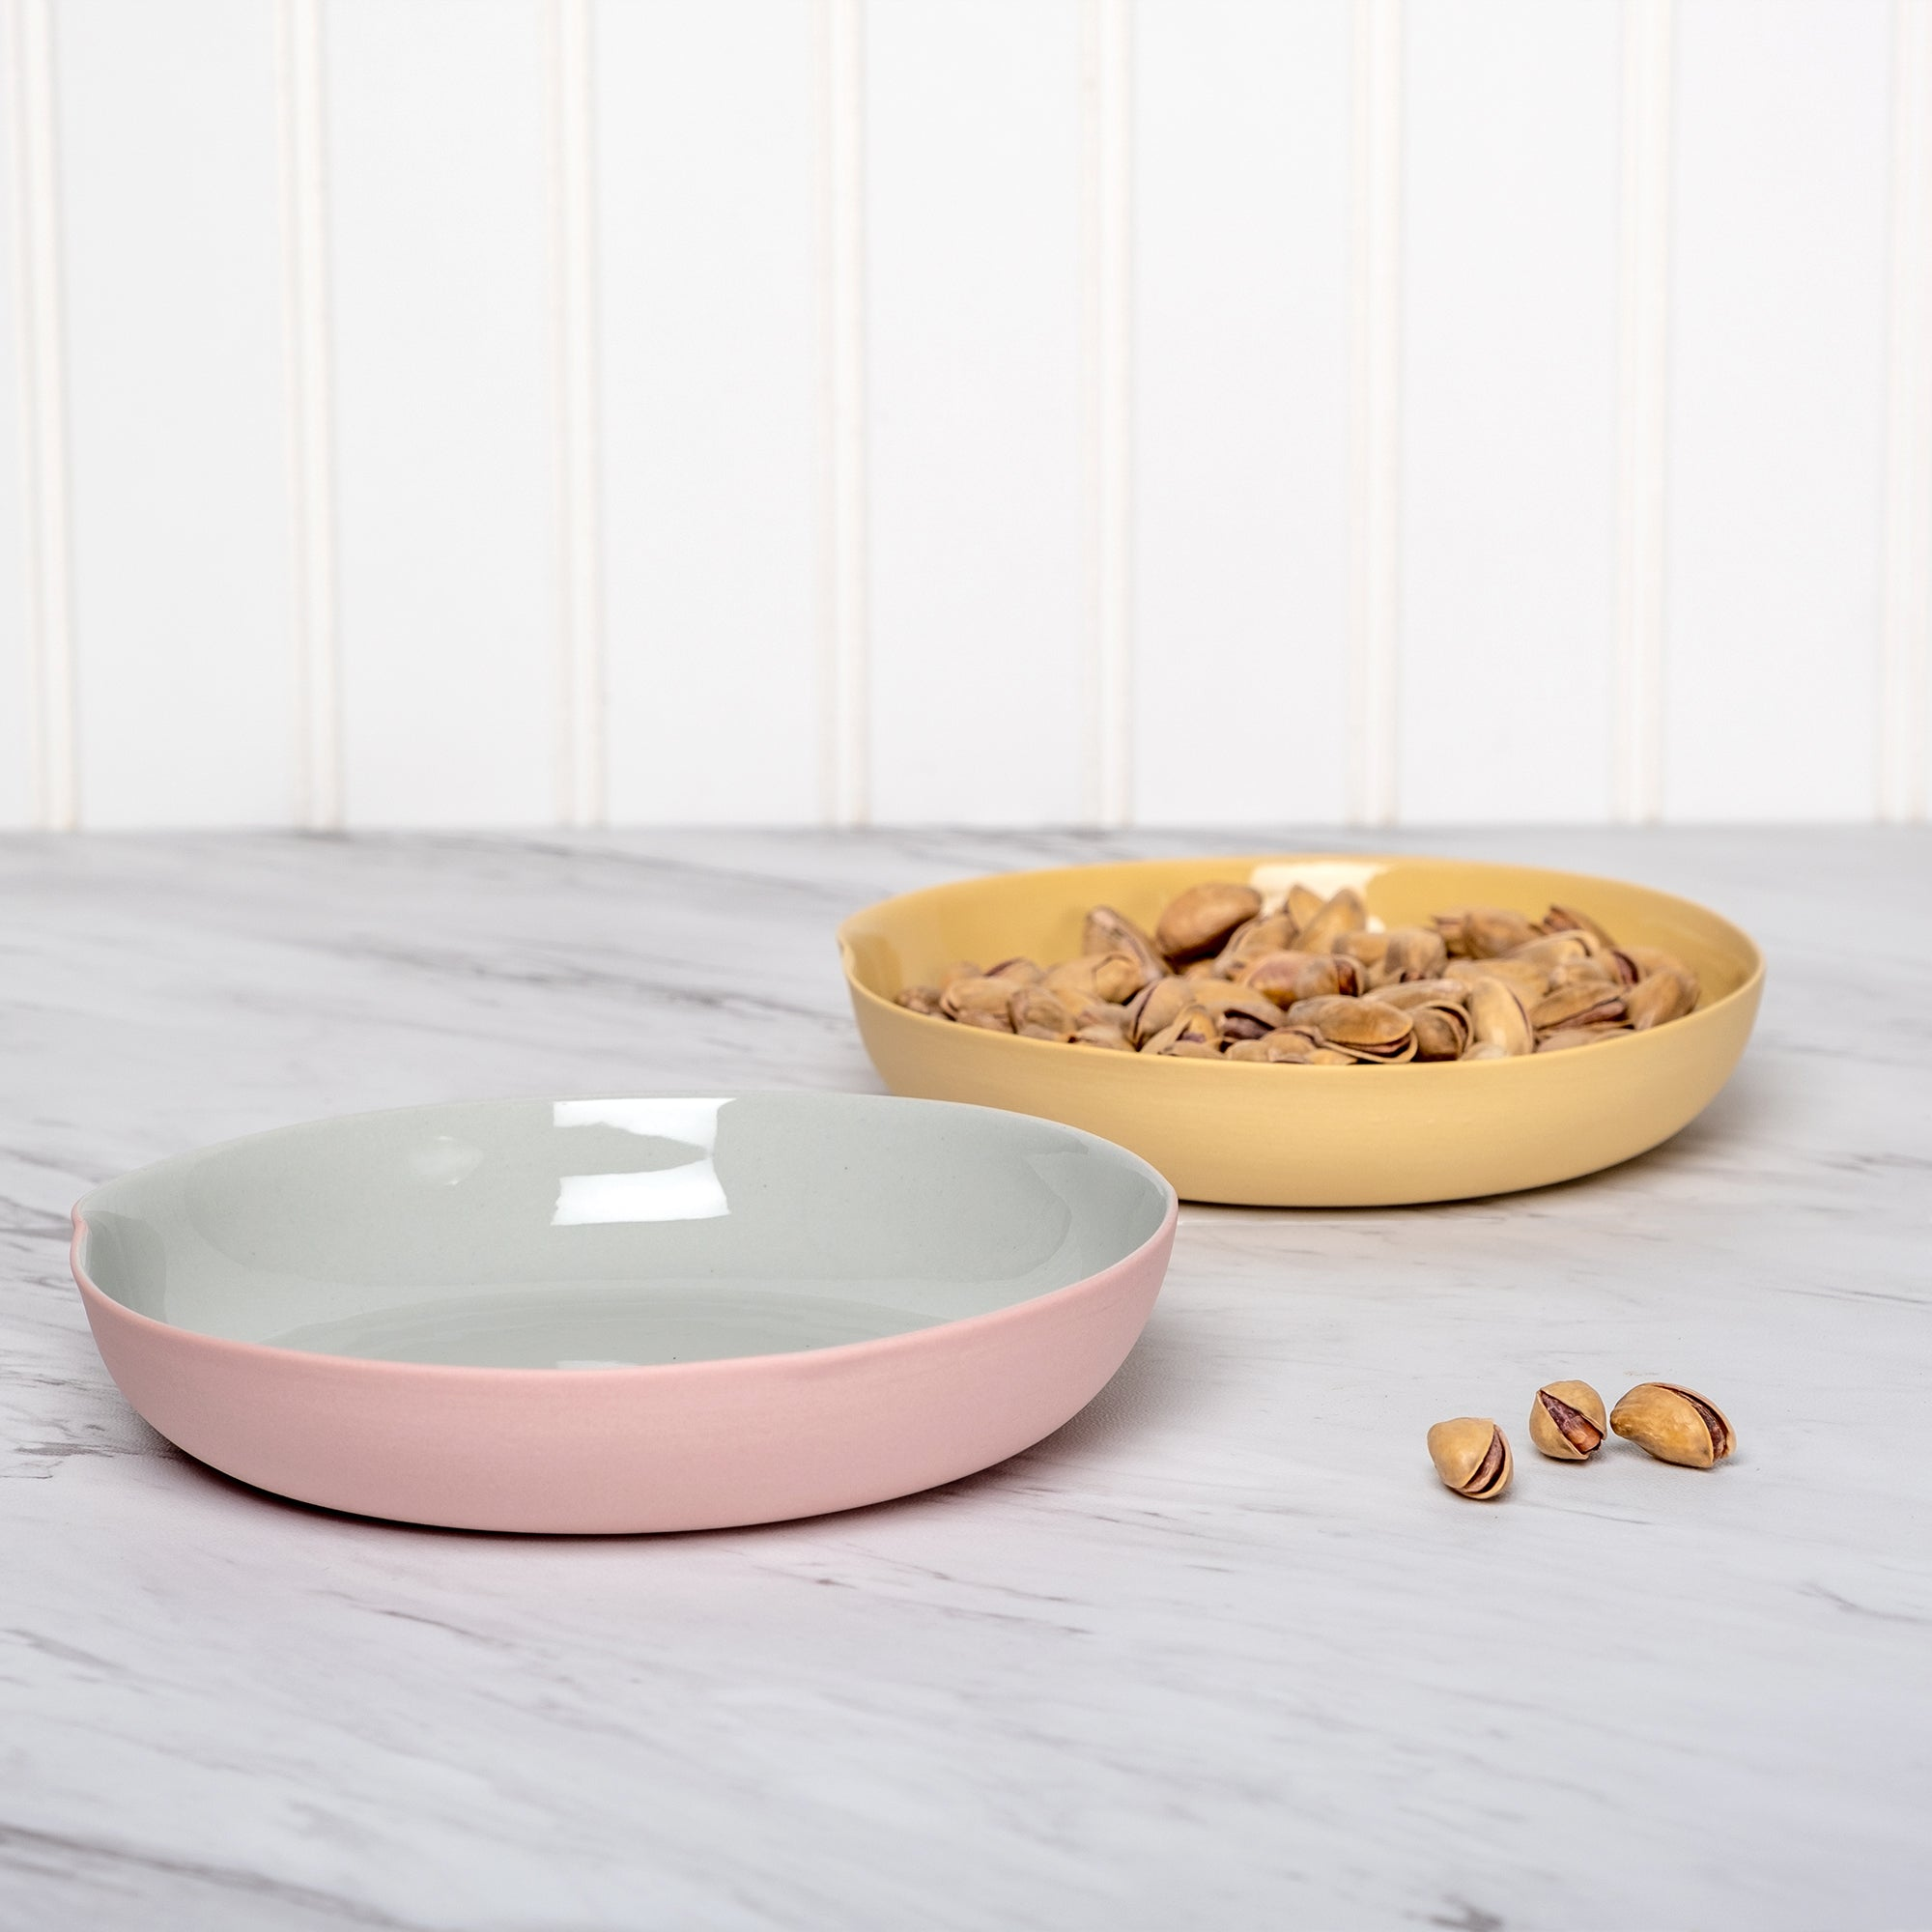 Kulak Ceramic Dream Shallow Bowl Set